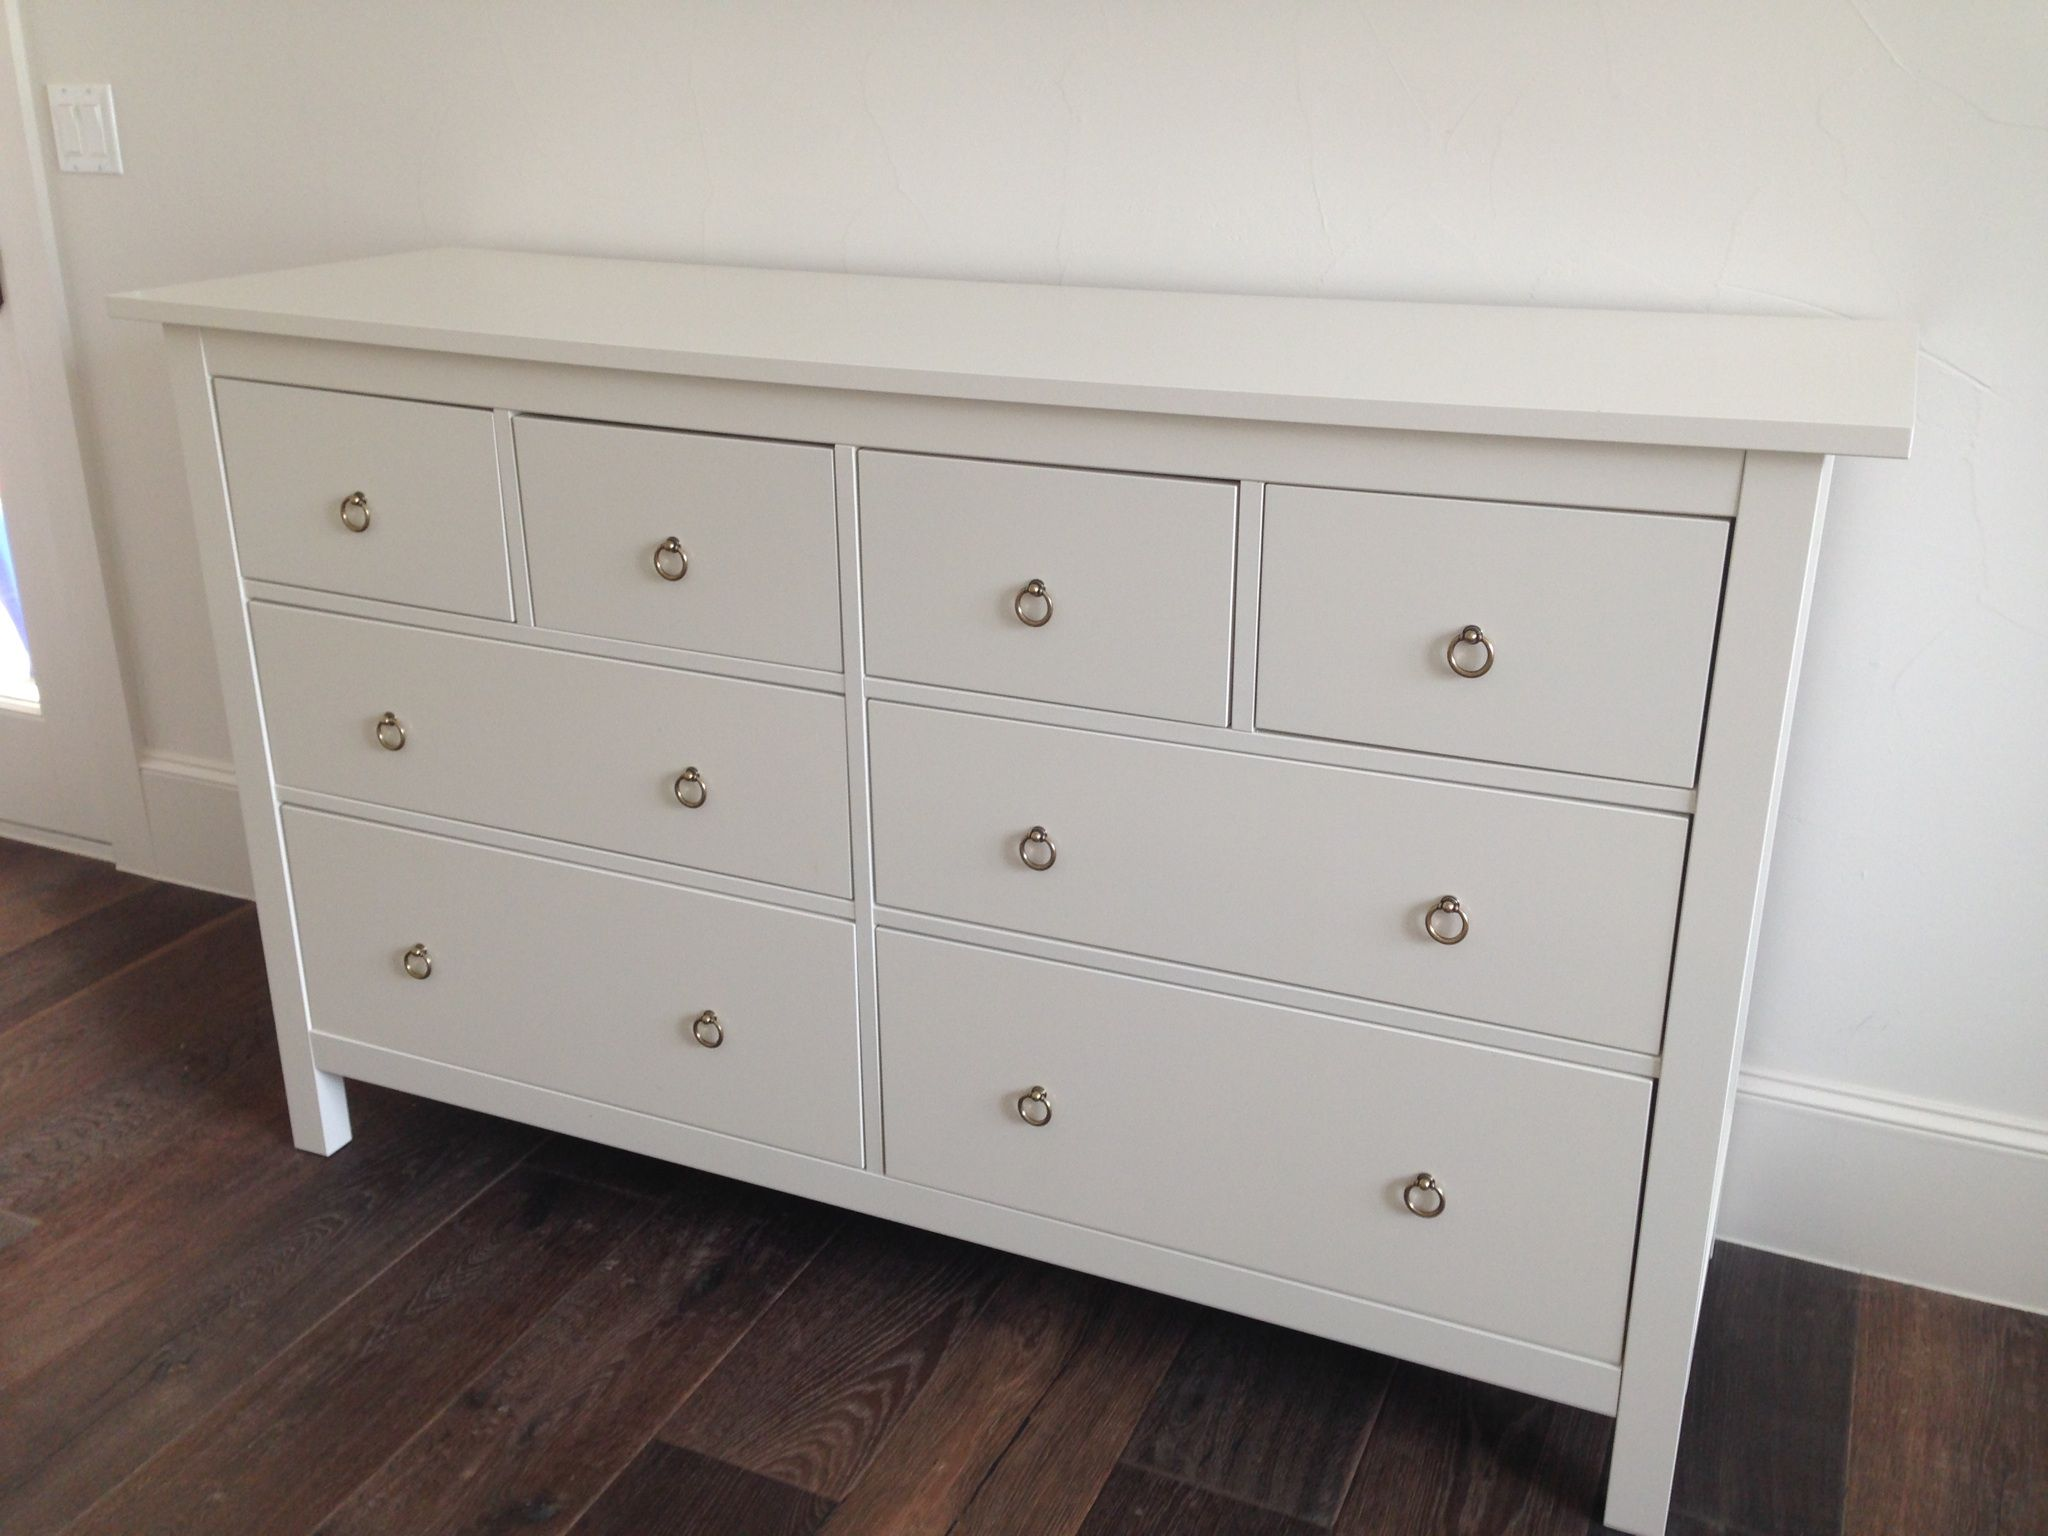 Ikea Hemnes dresser with gold ring pulls. Ikea Hemnes dresser with gold ring pulls   For Nat   Pinterest